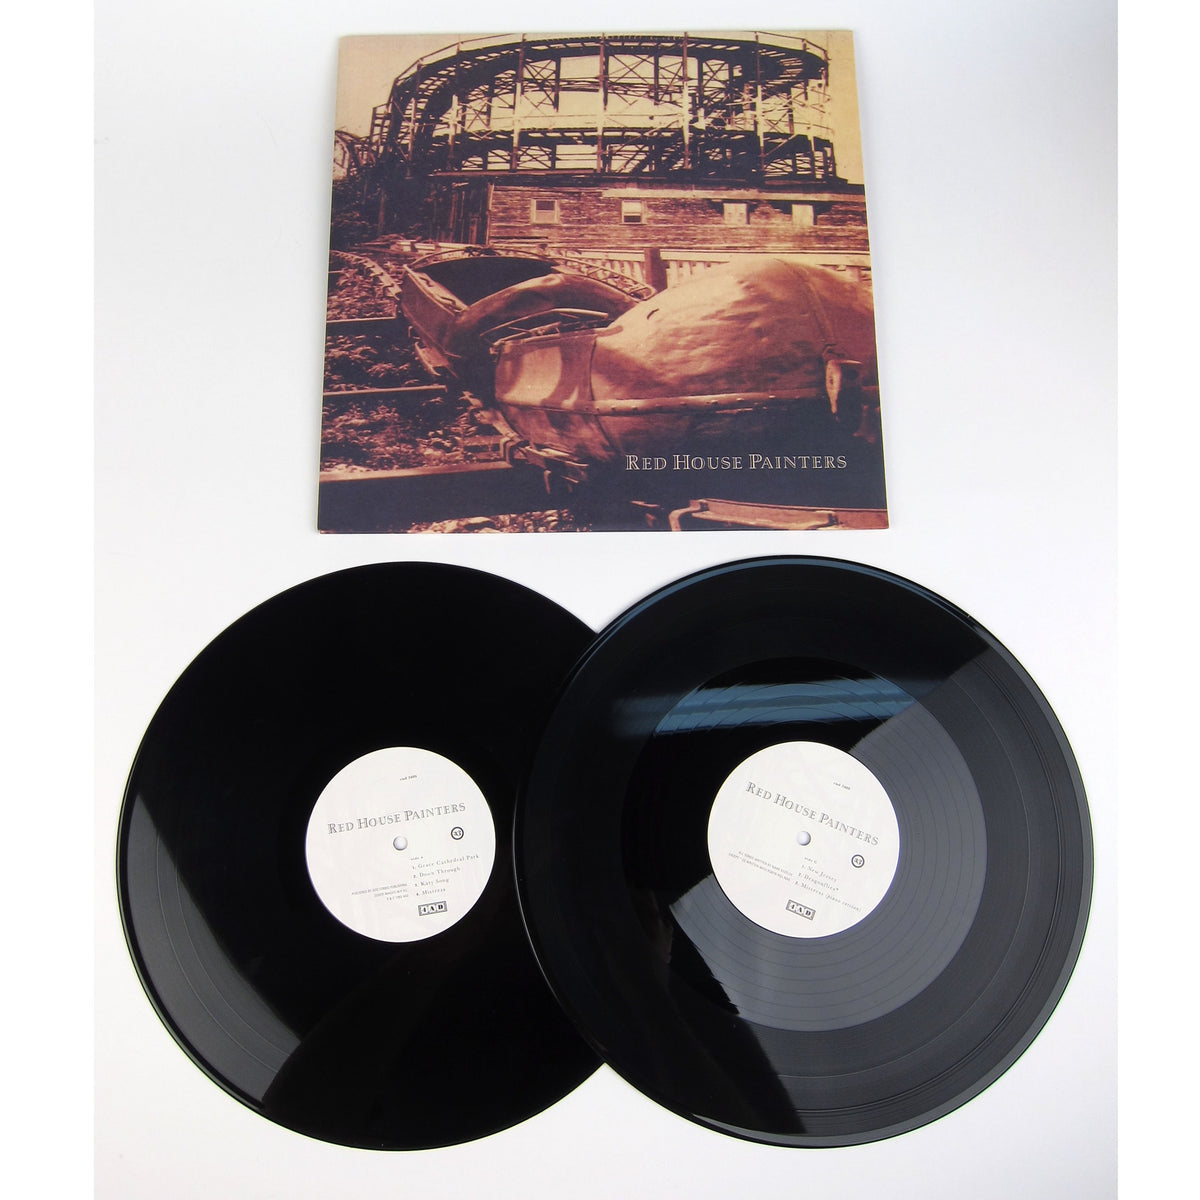 Red House Painters: Vinyl LP Album Pack